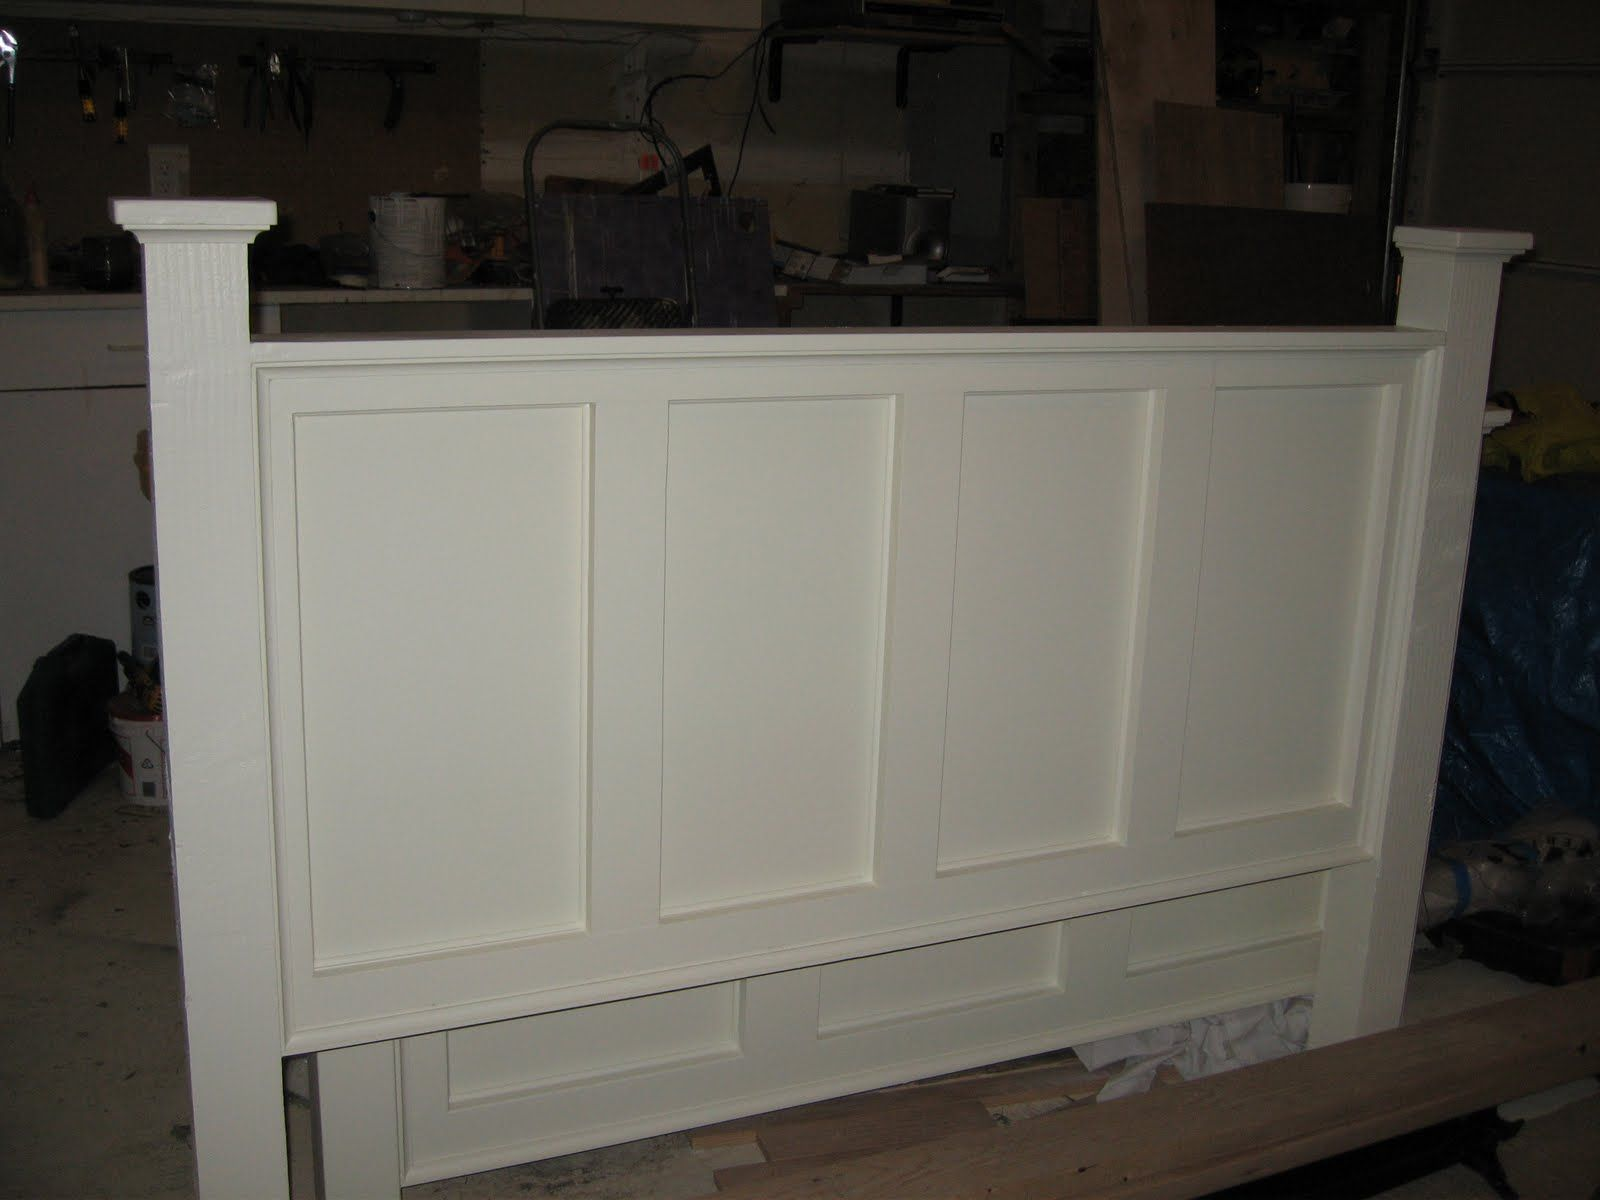 Repurposed Front Door Queen Headboard Made From Kitchen Cabinet